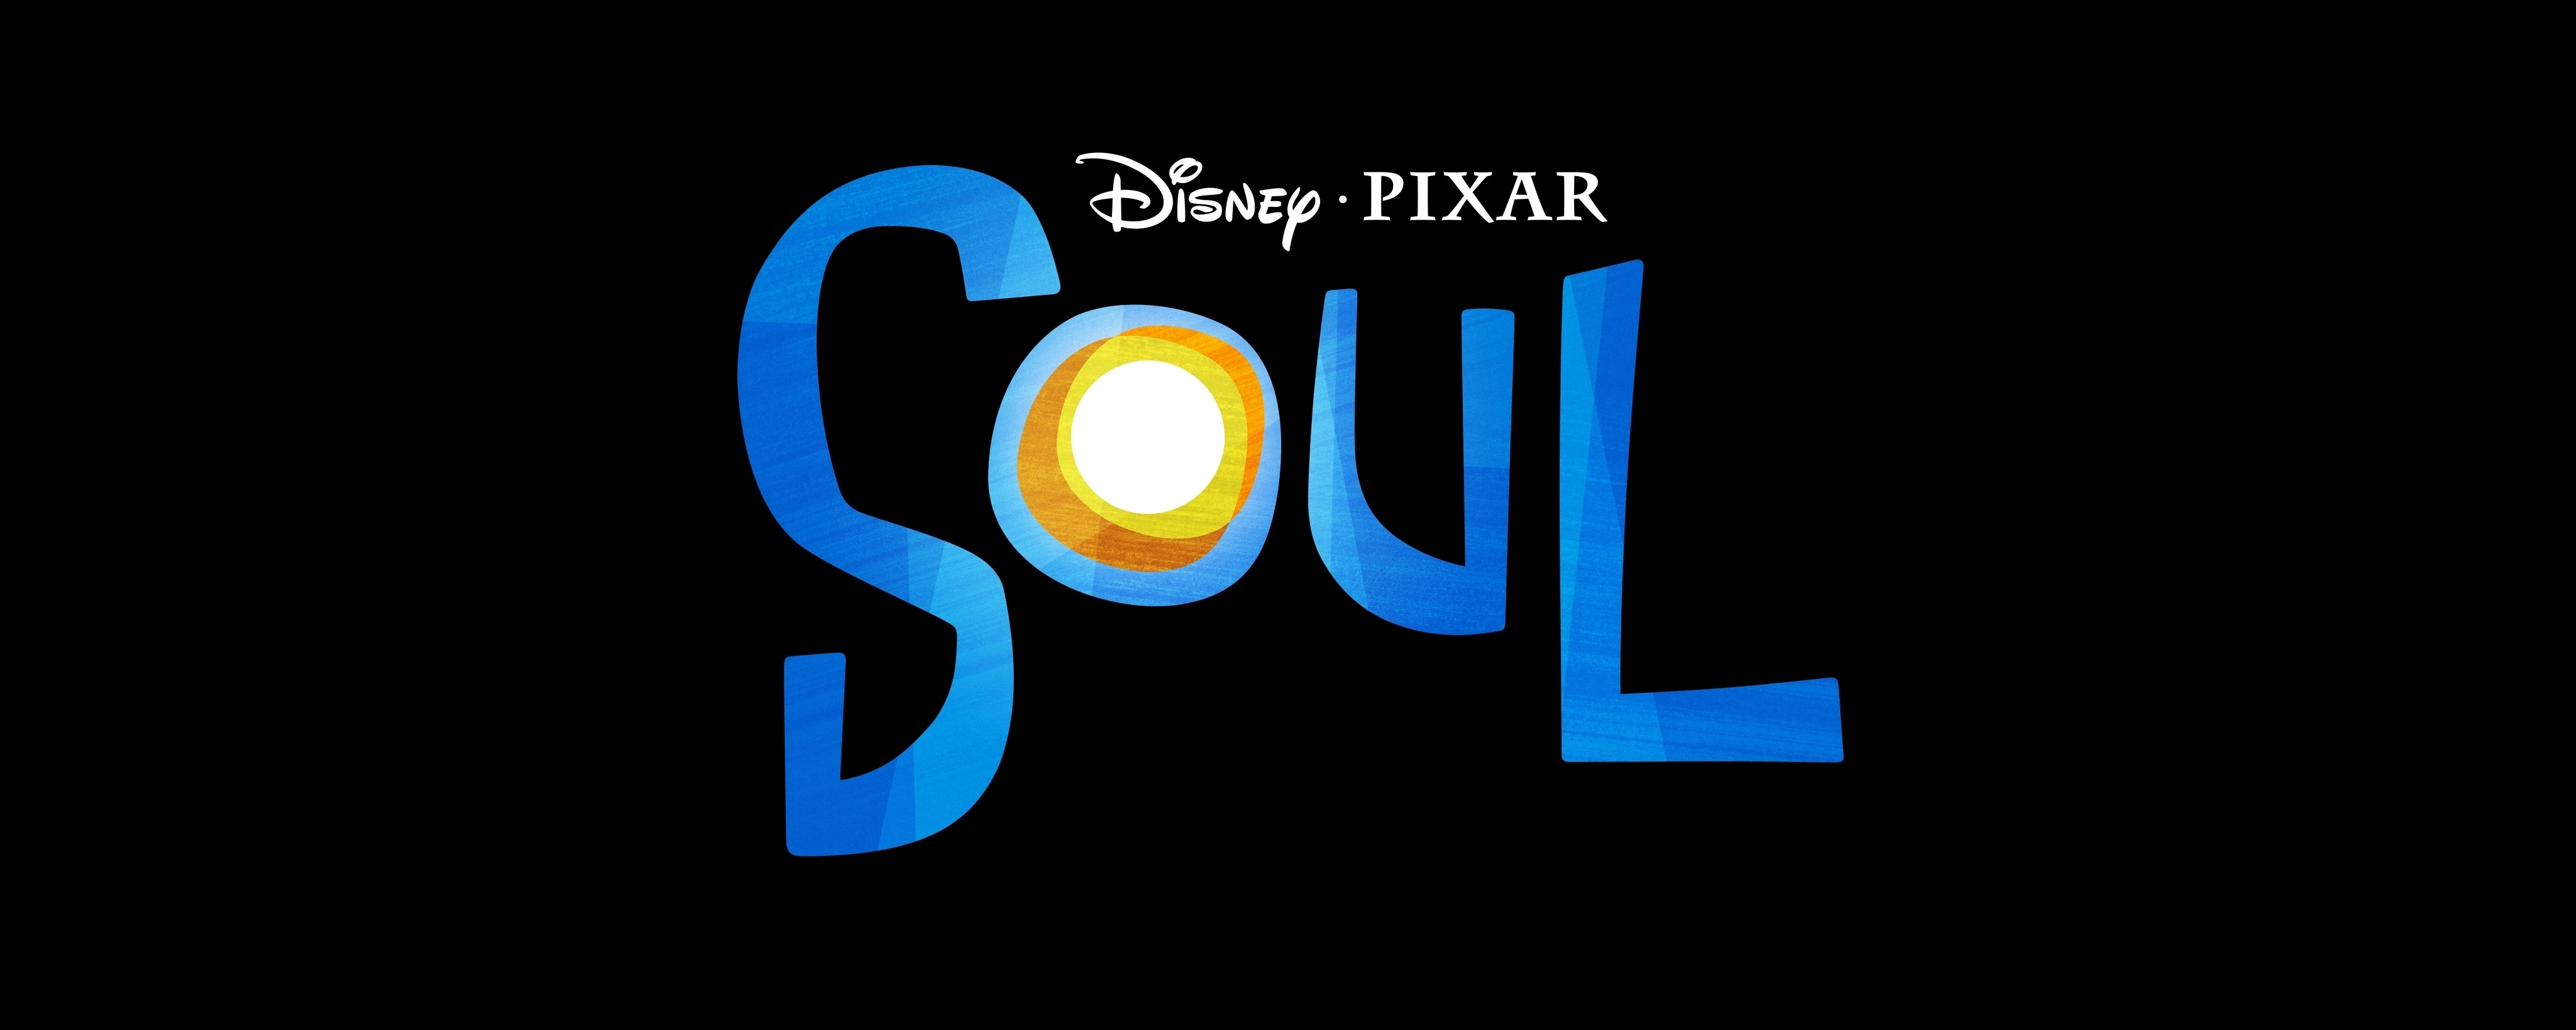 Disney & Pixar's 'Soul' To Make Exclusive Holiday Debut On Disney+